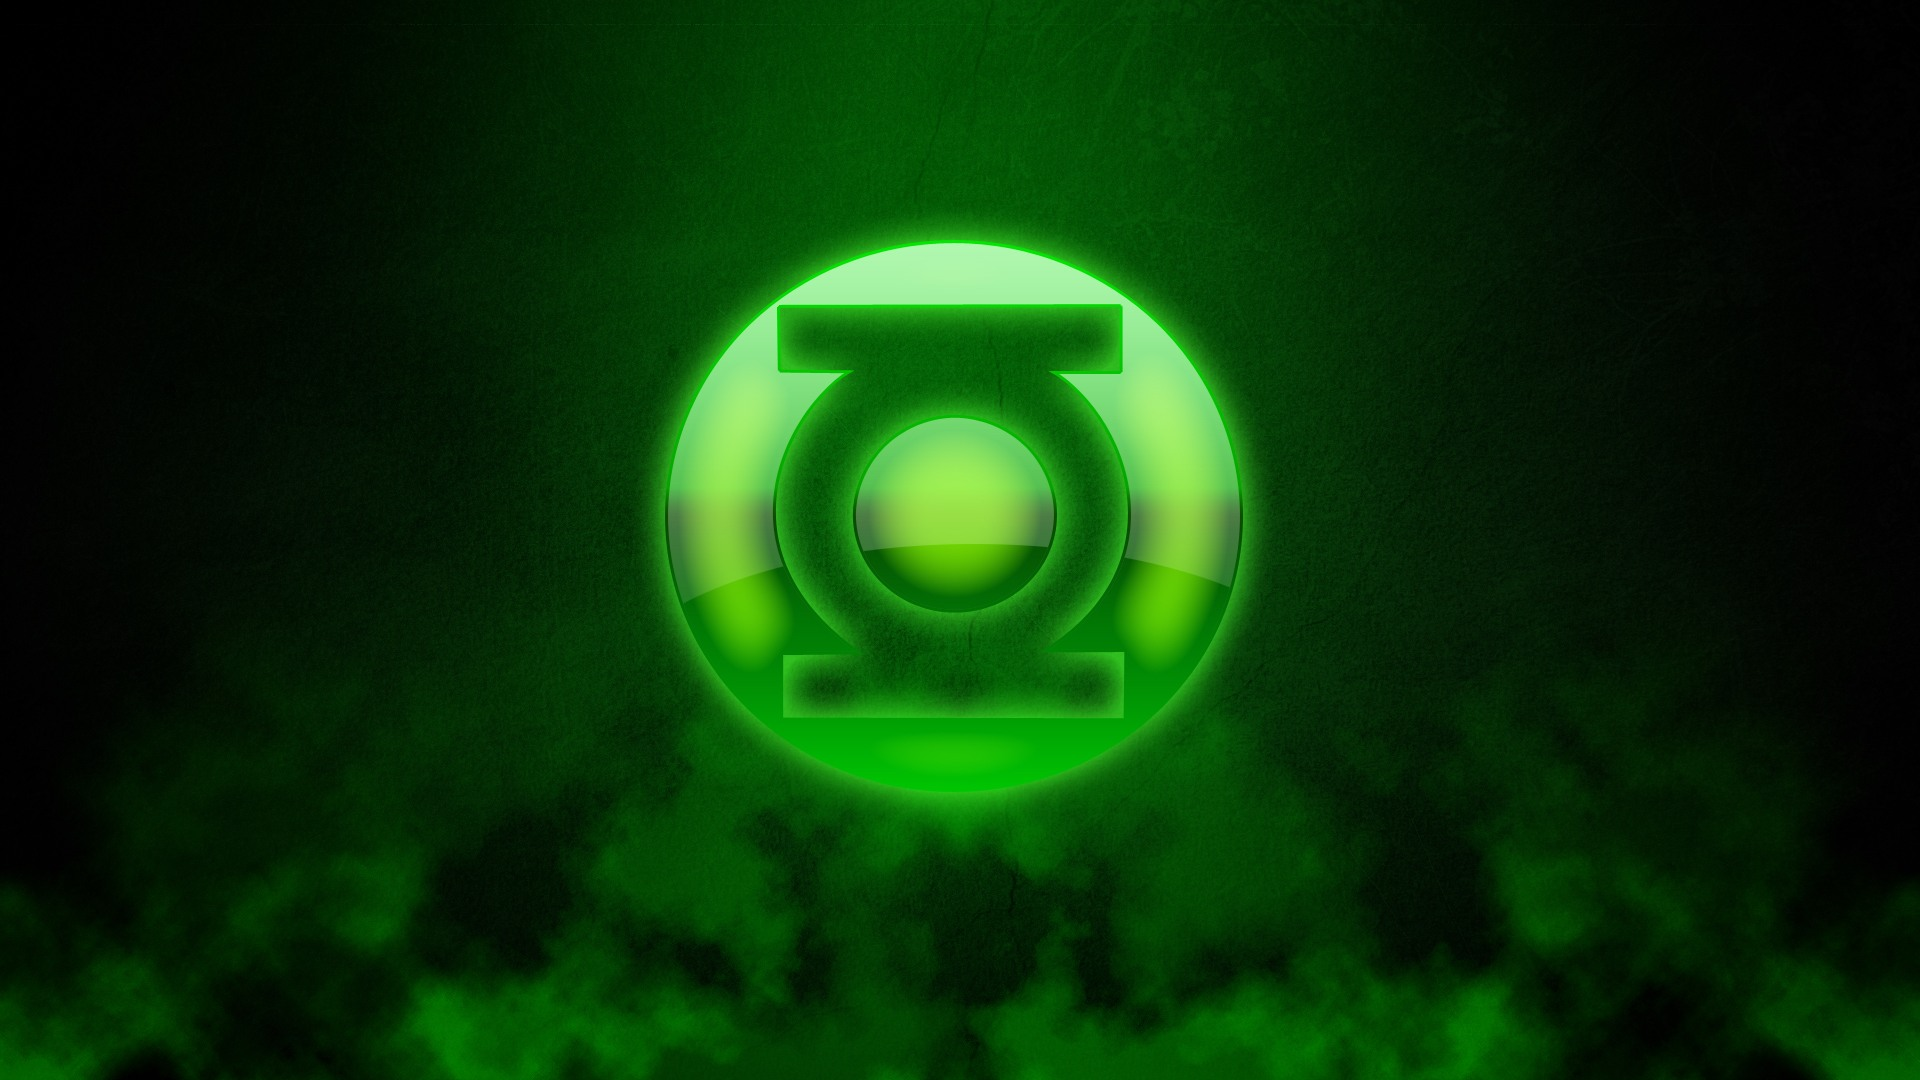 Upcoming Green Lantern Green Arrow Movie 2015 Green Lantern Green 1920x1080